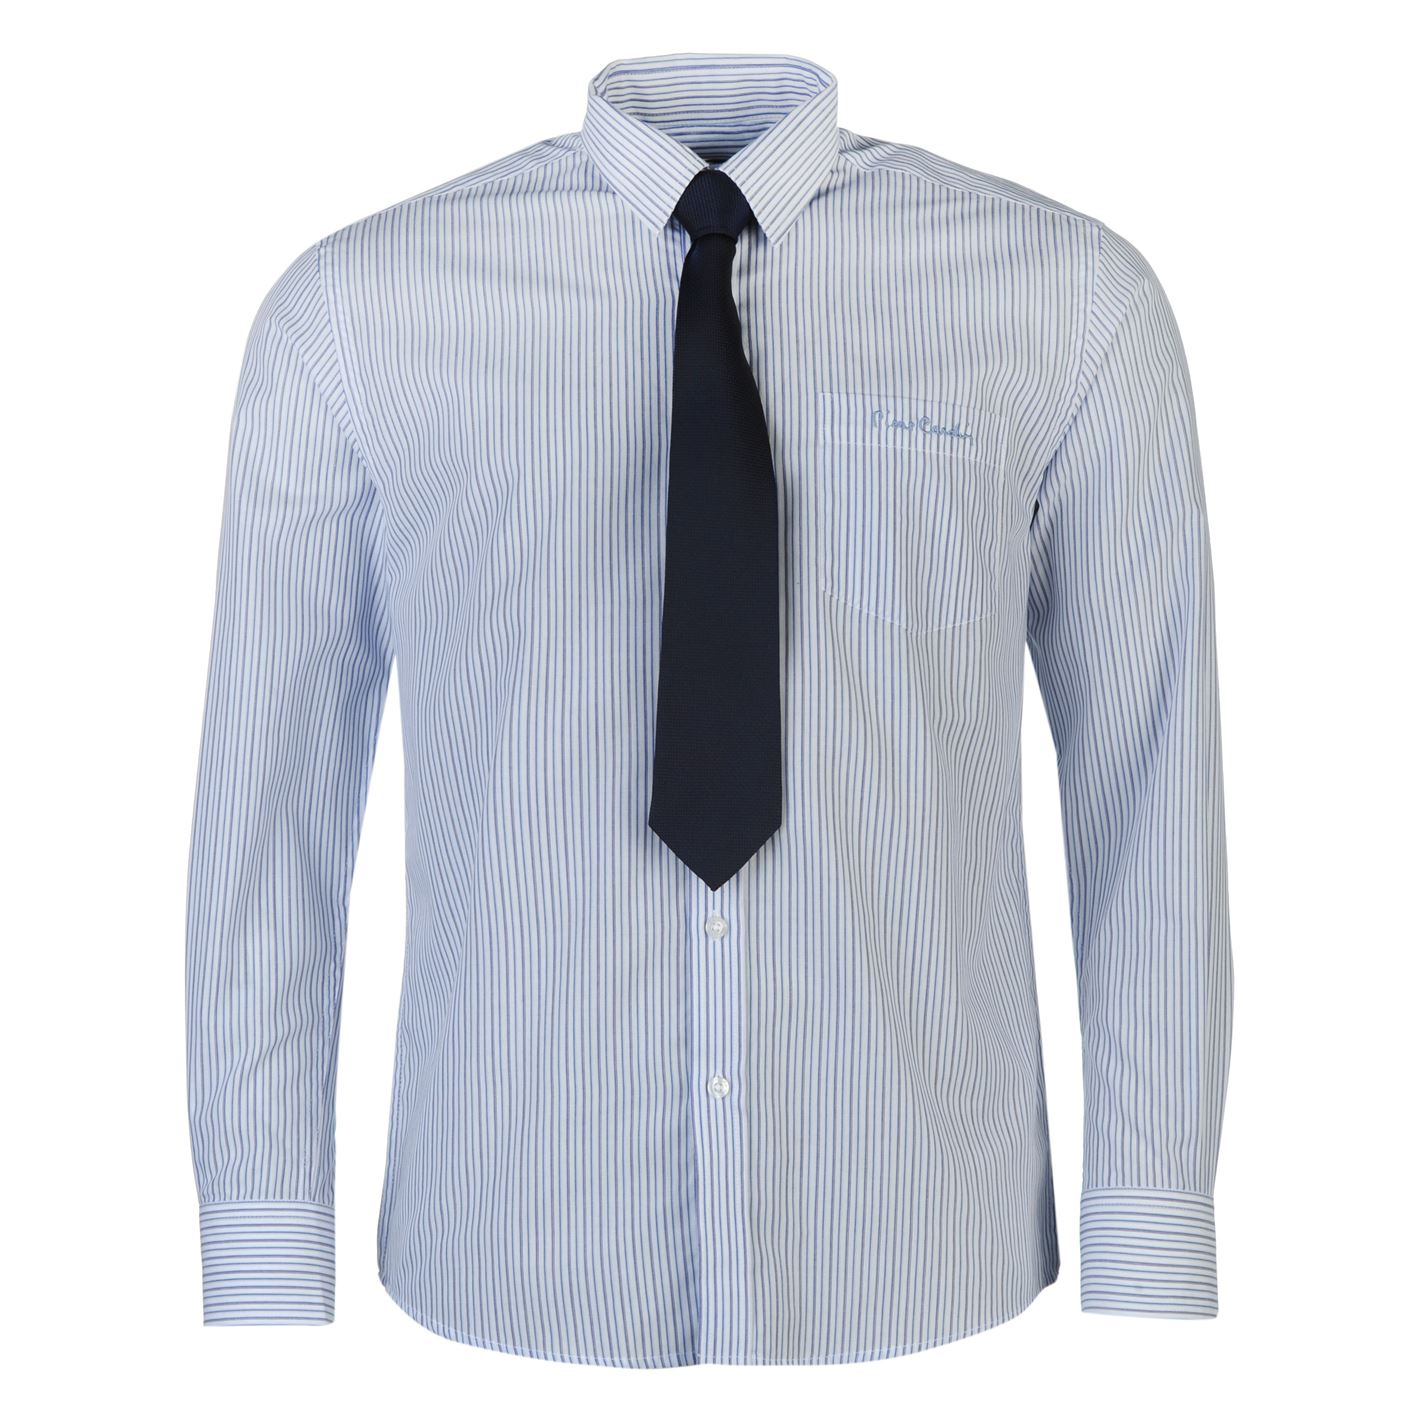 c00e173156df ... Pierre Cardin Long Sleeve Shirt Mens With Tie. -10%. Košeľa ...